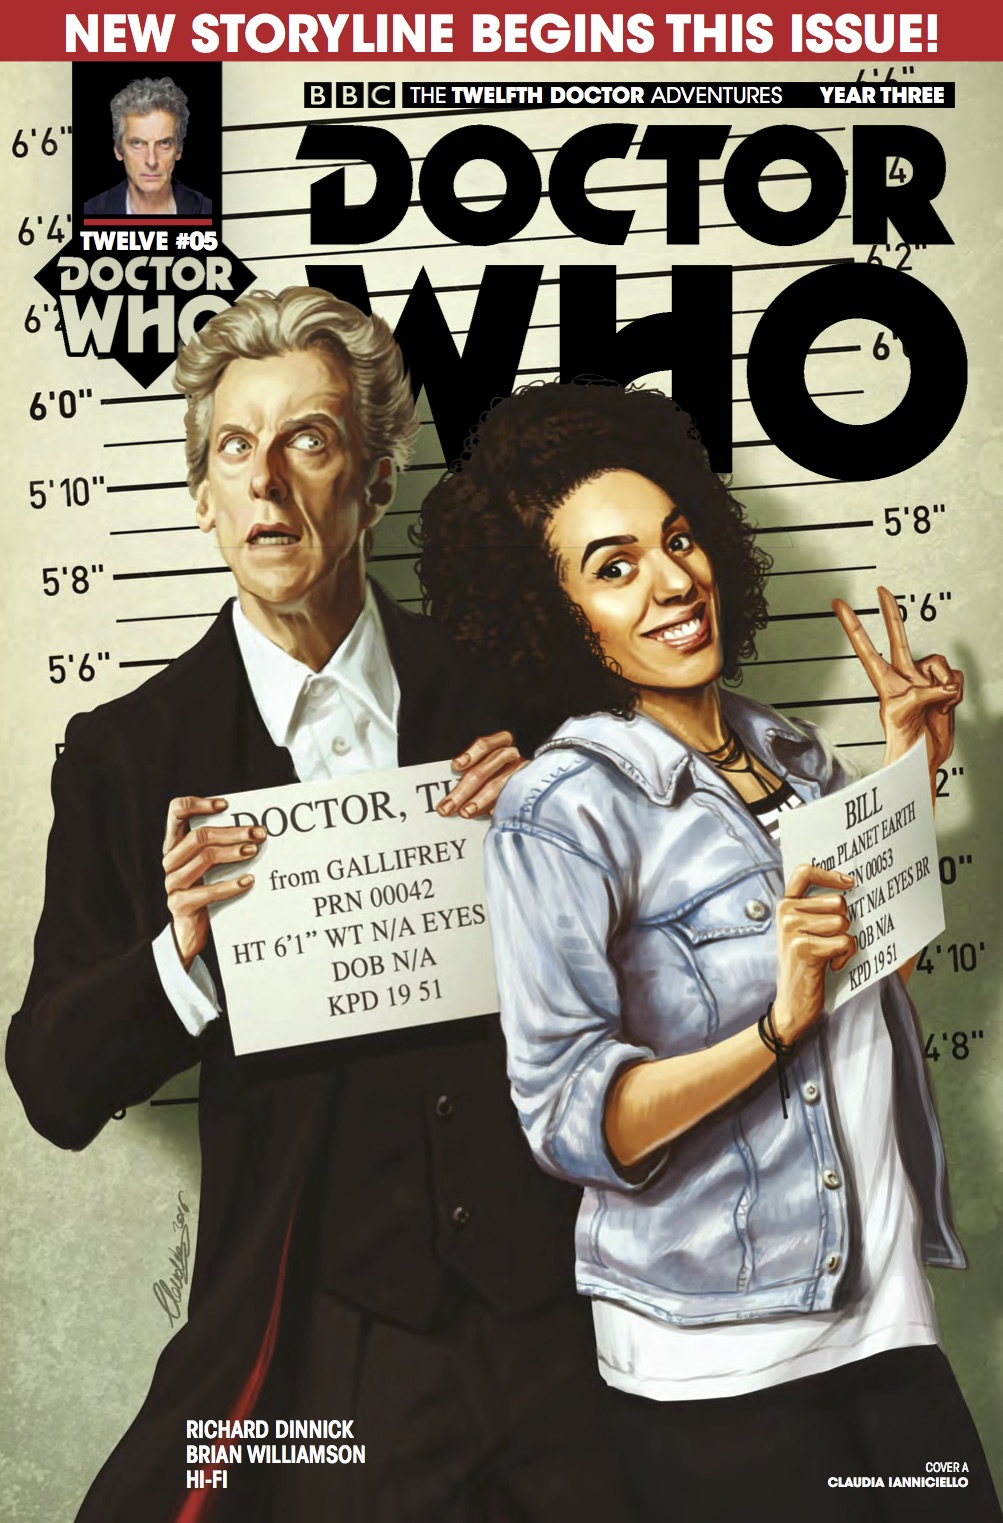 Doctor Who 12th Year Three #5  Cover A (Credit: Titan / ​Claudia ​Iannicello)